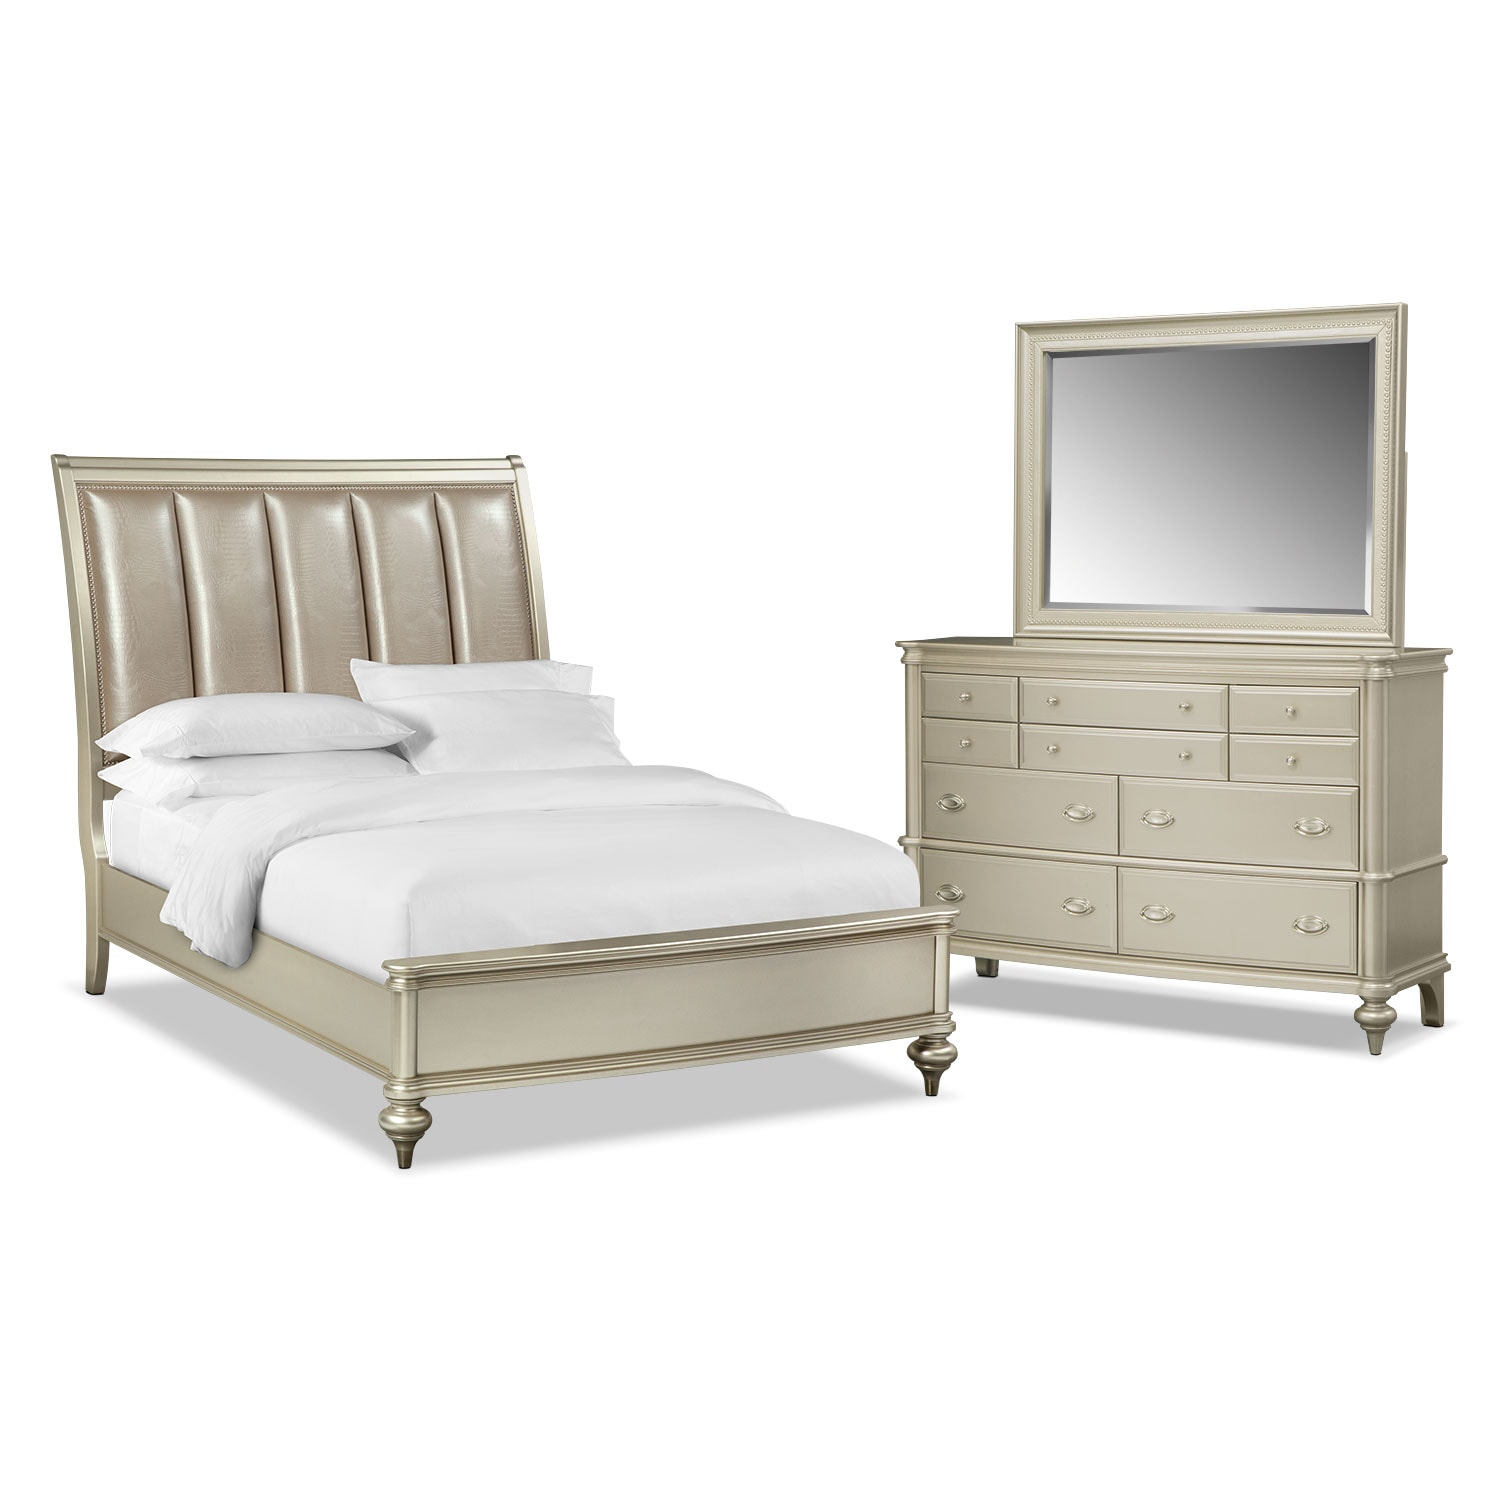 Bedroom Furniture - Esquire 5-Piece Queen Bedroom Set - Platinum